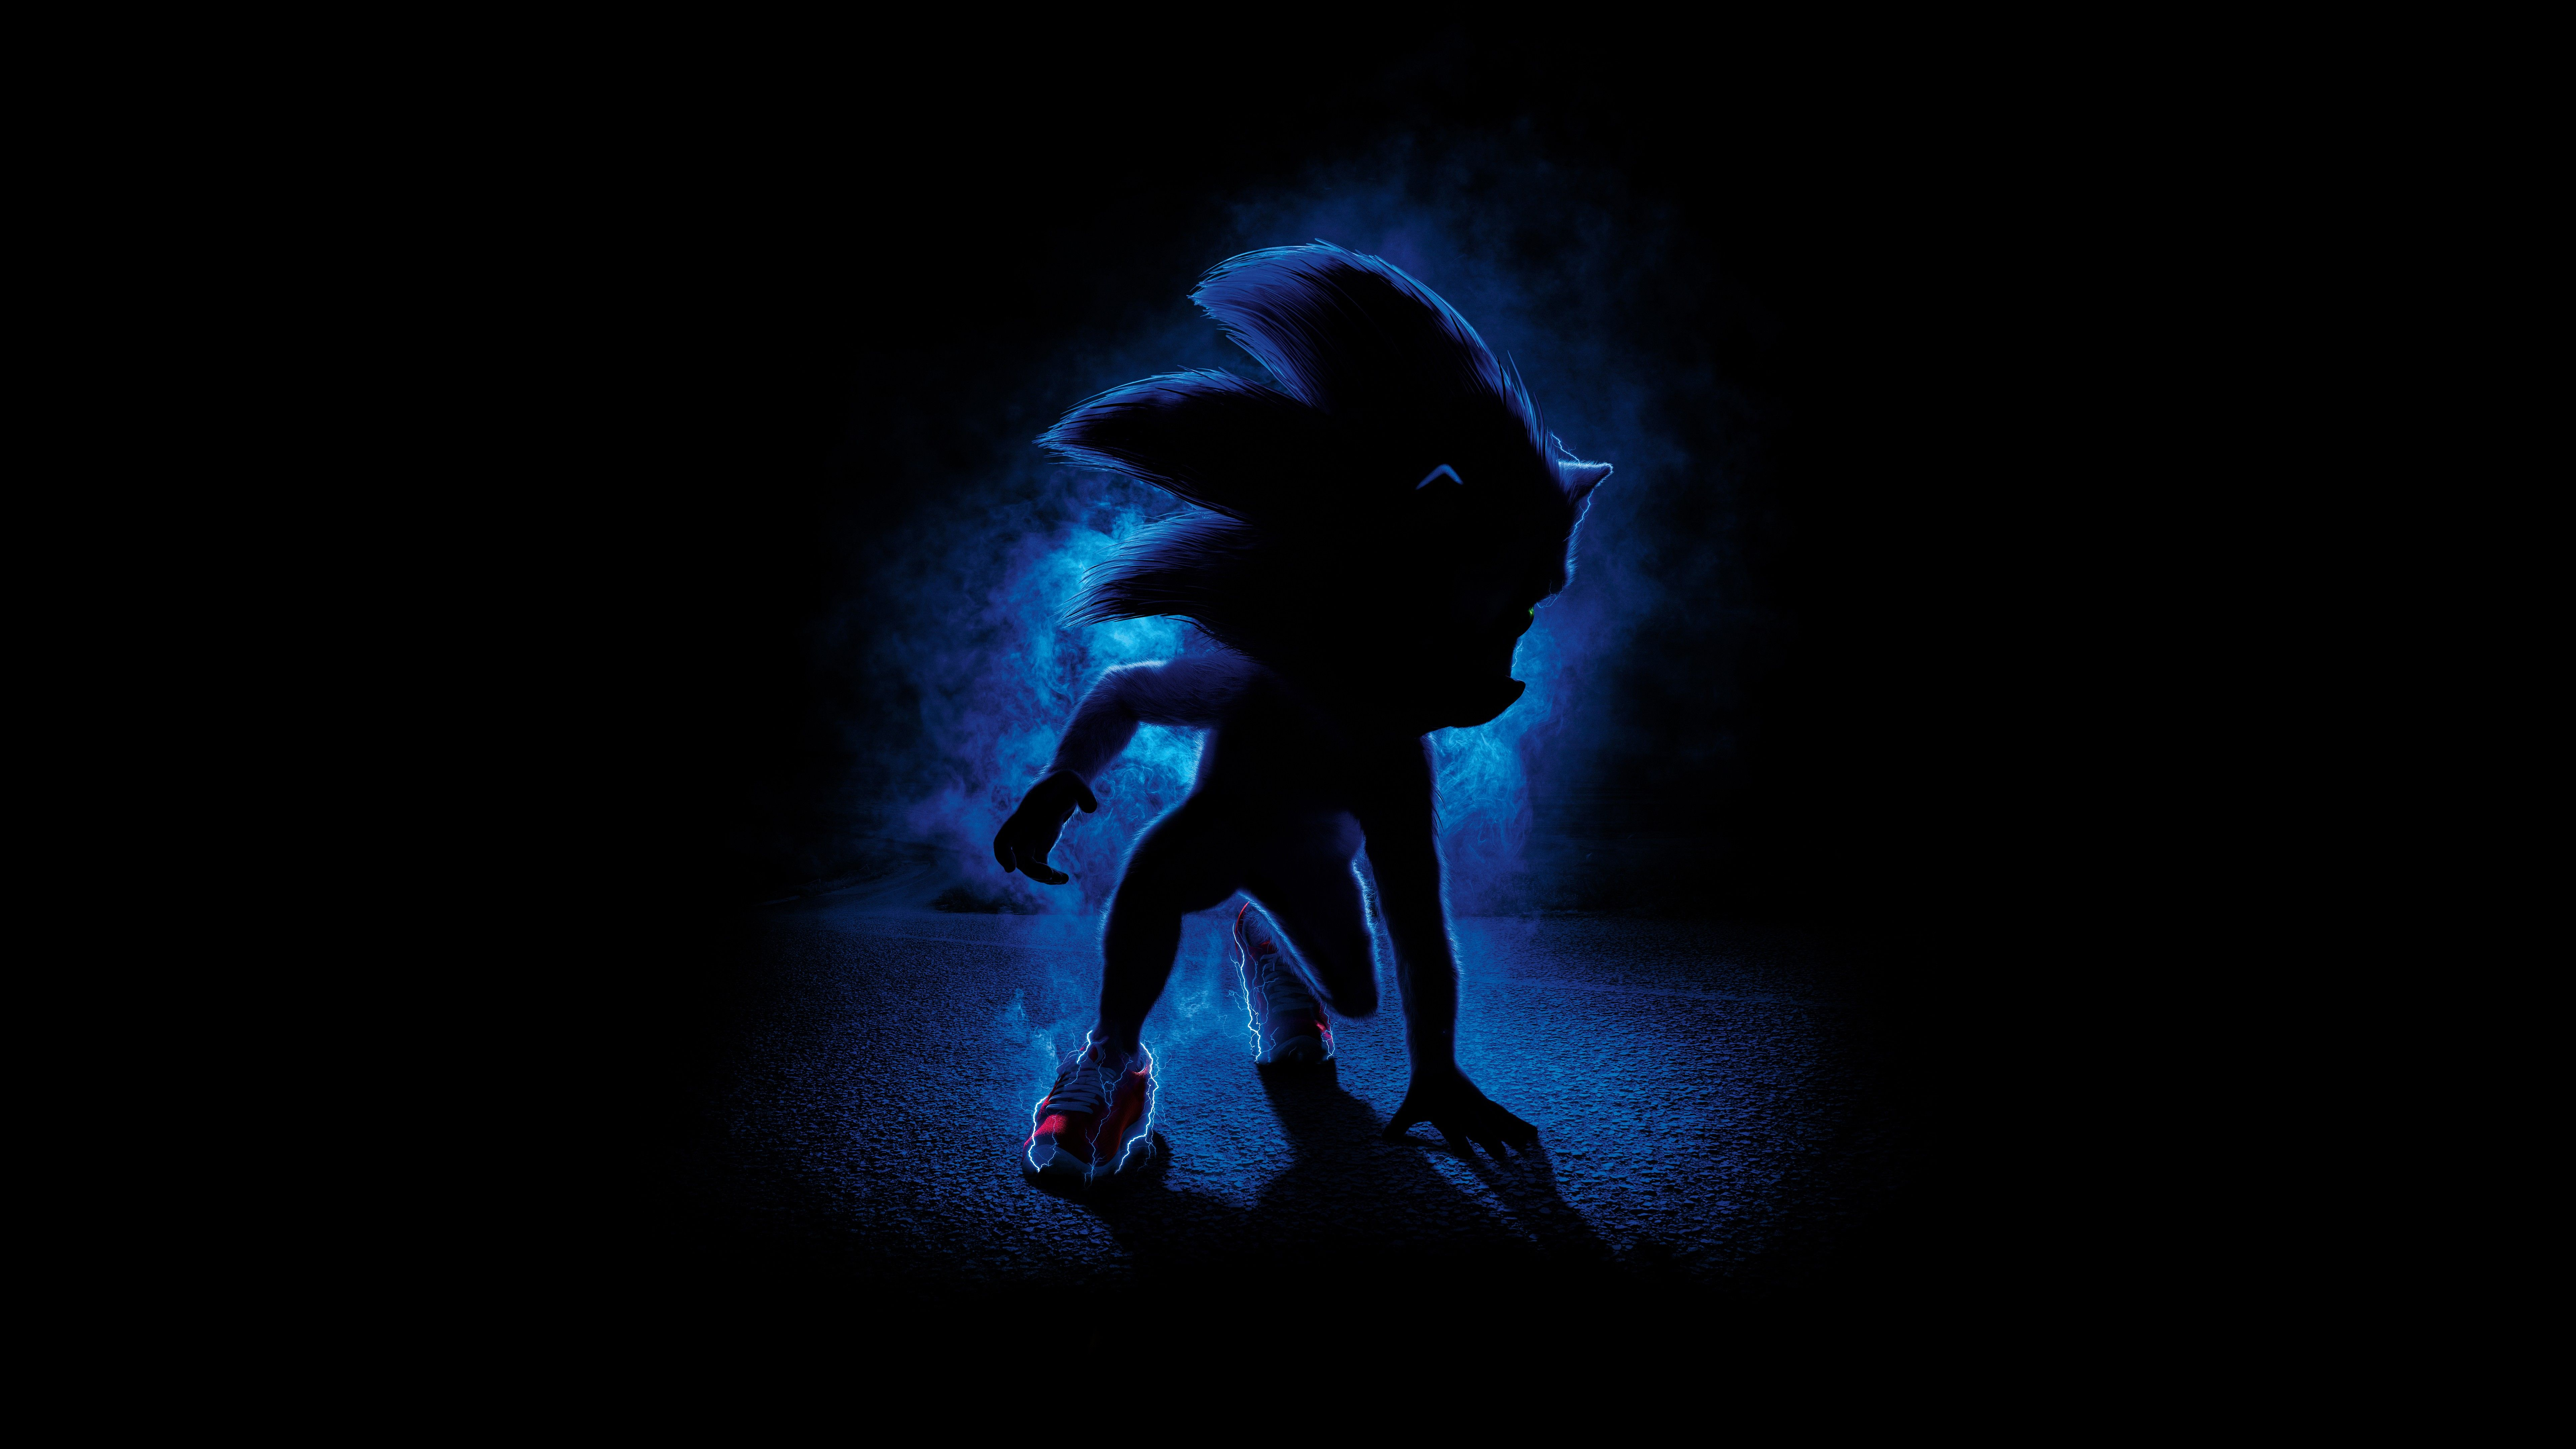 7680x4320 Sonic the Hedgehog Movie Wallpaper 8k Ultra HD ID:3283